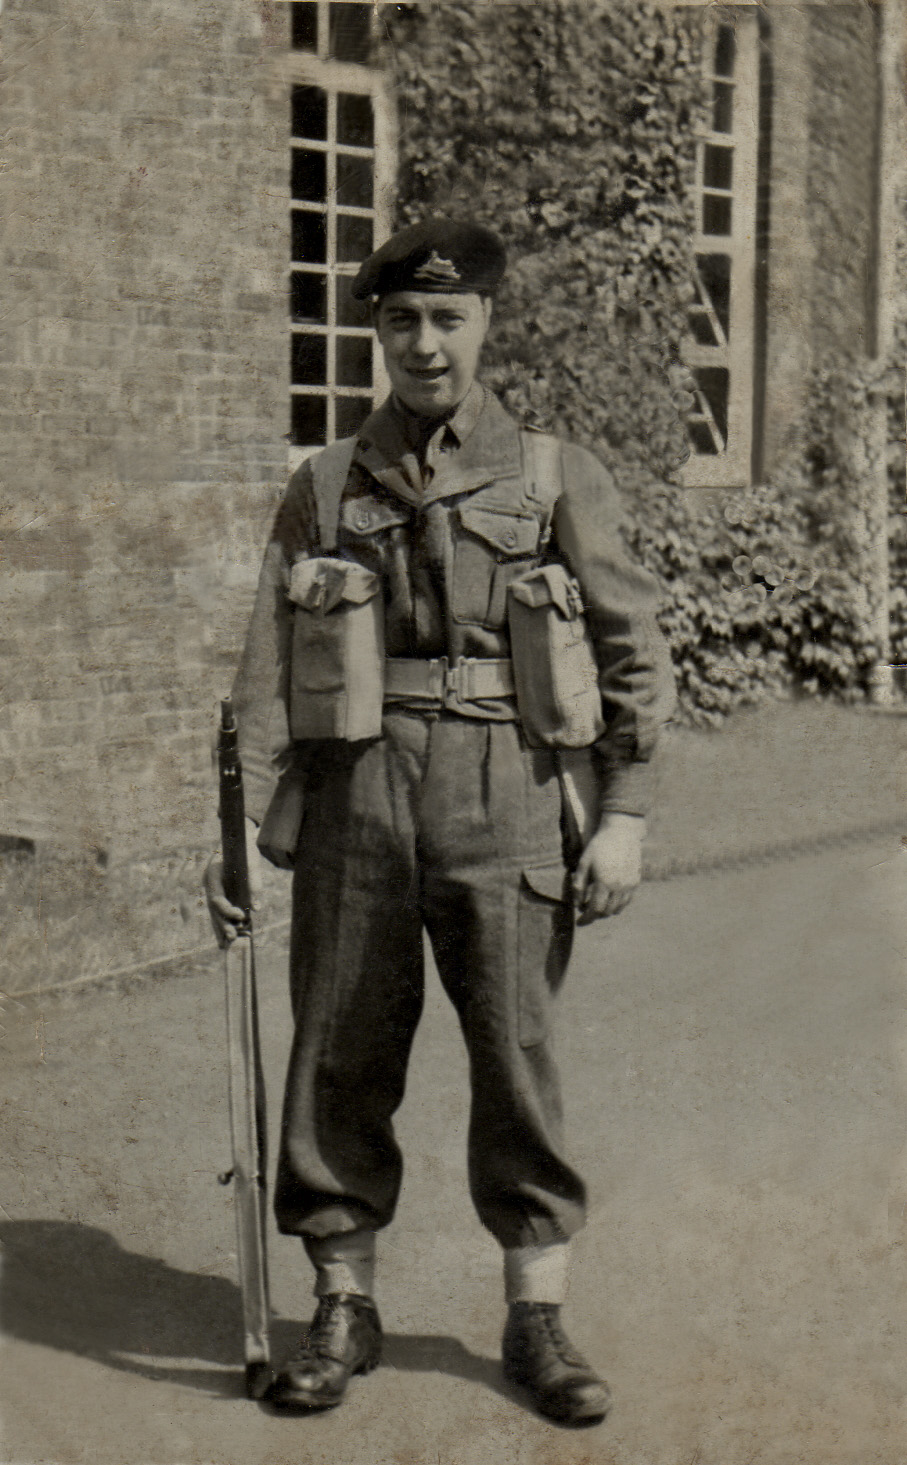 Brian Tappin - National Service 1954